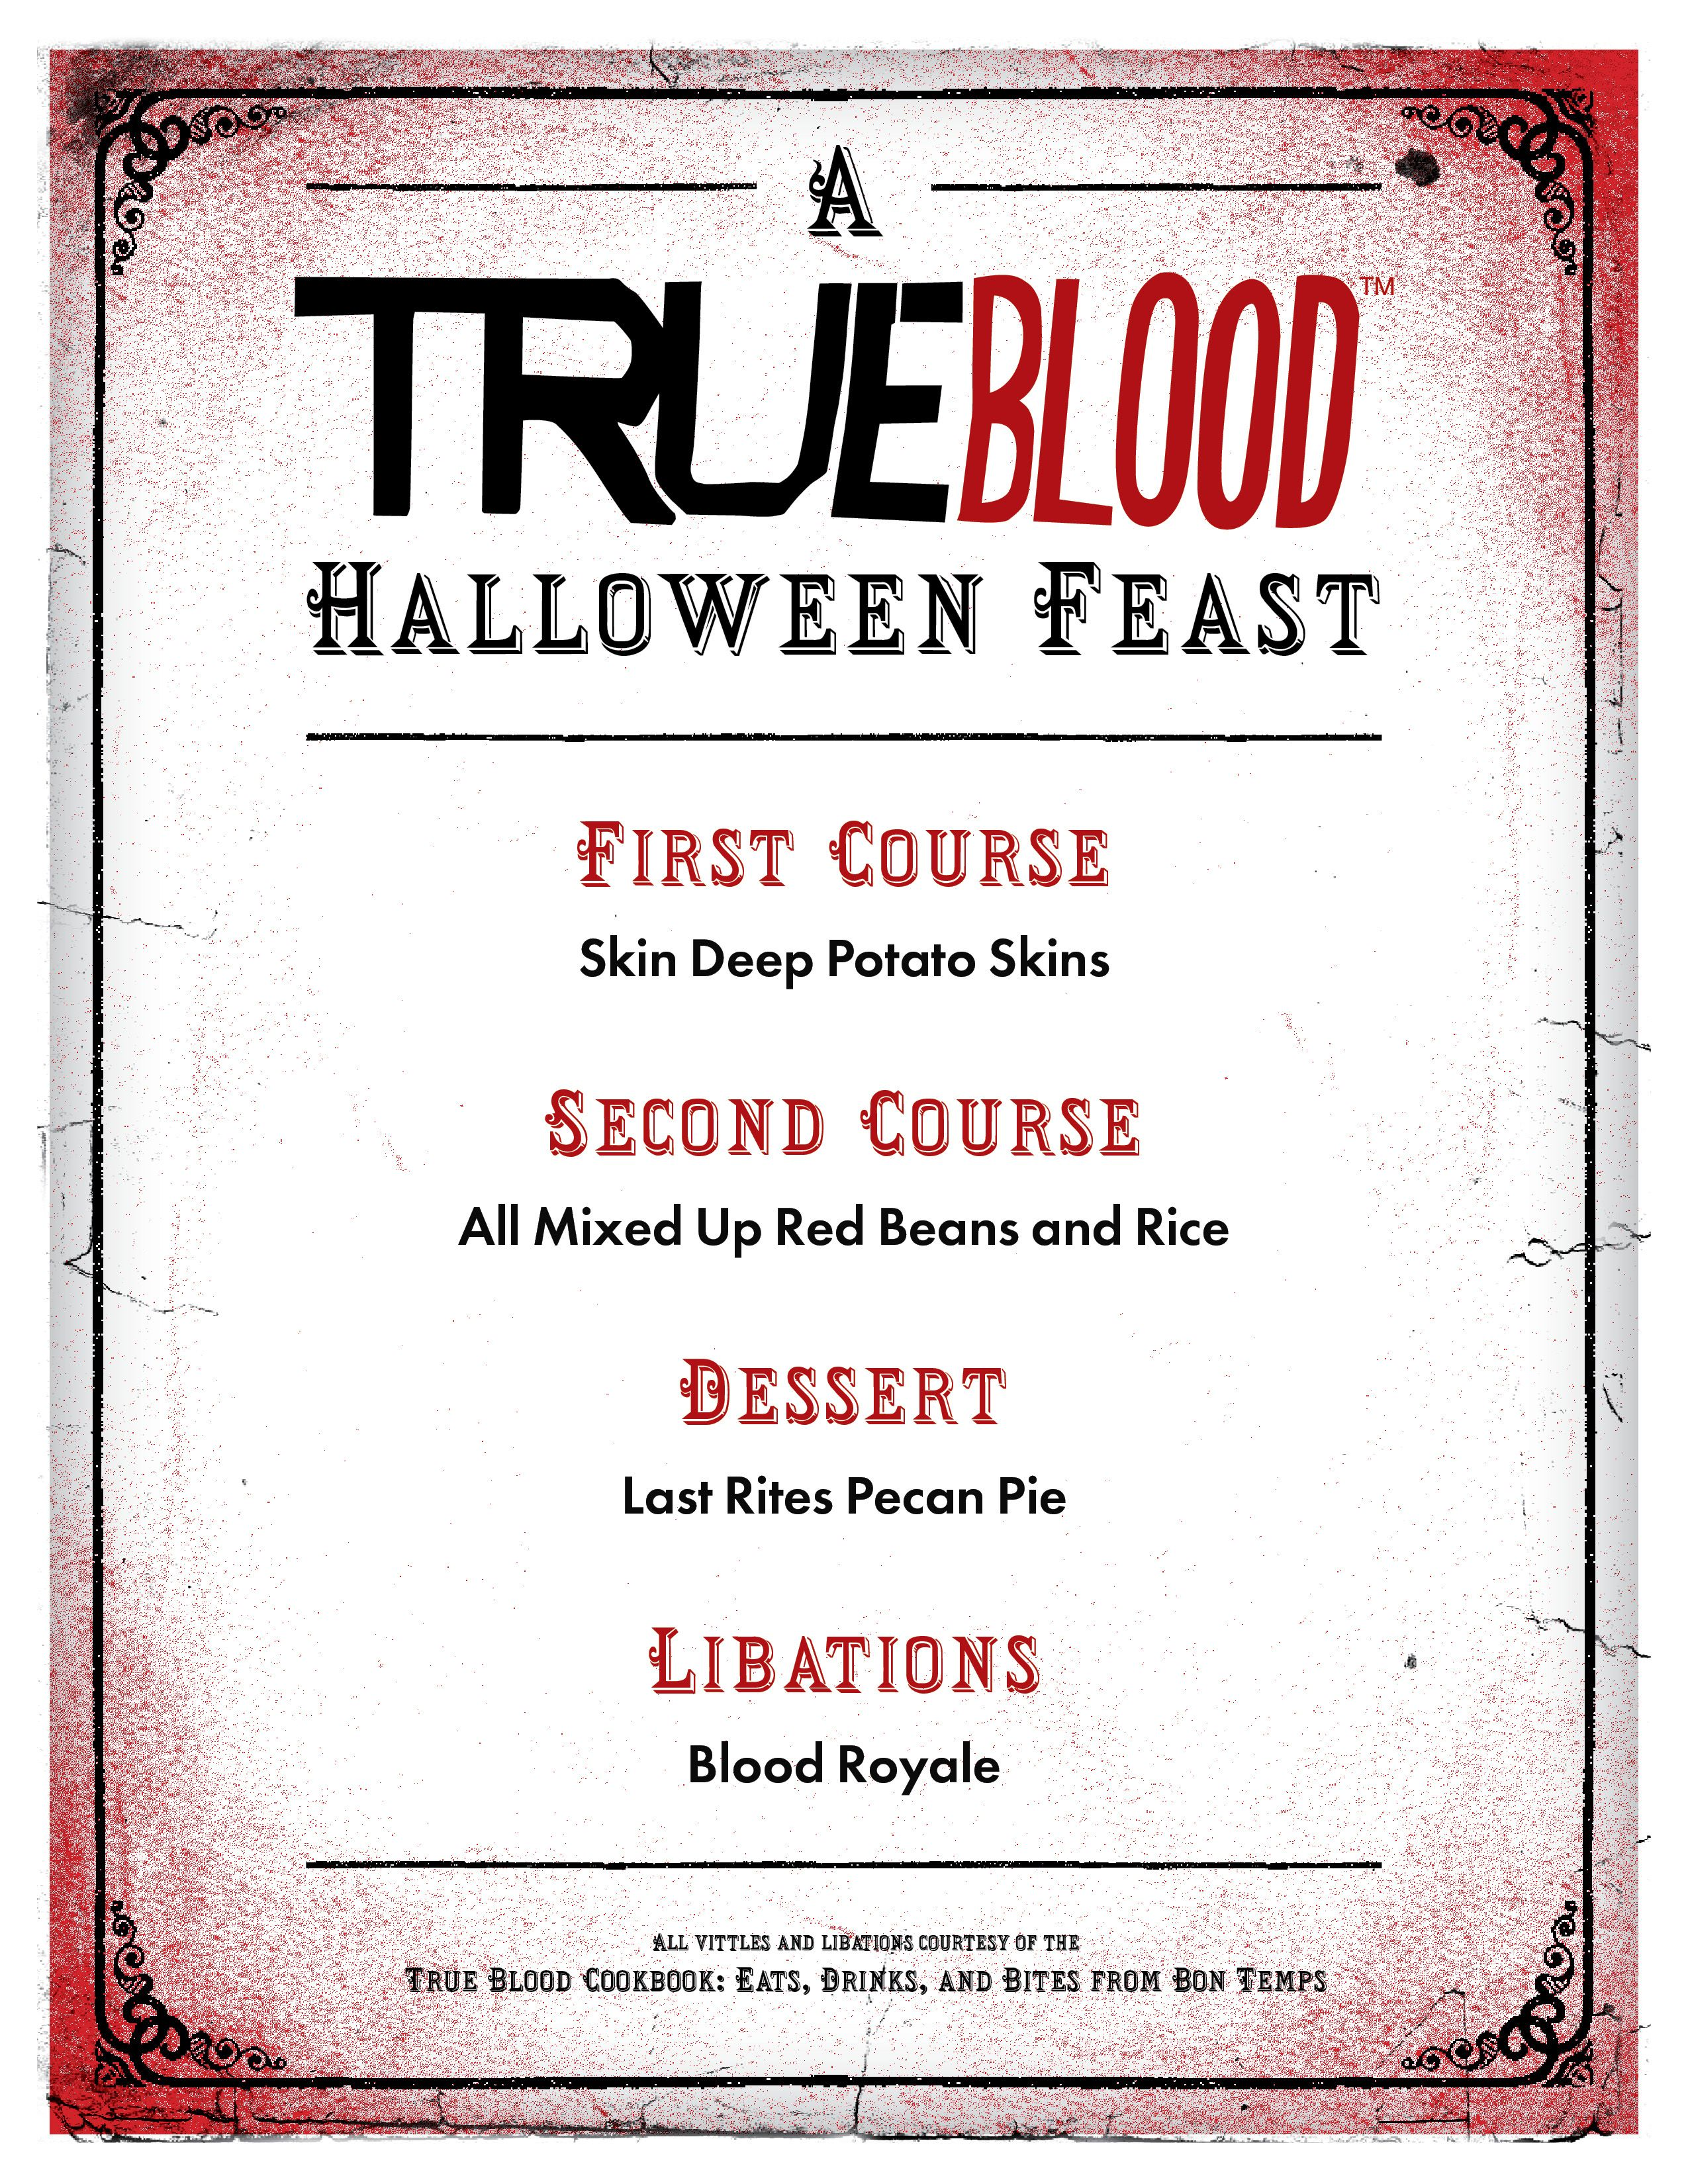 Download true and blood temps from drinks bites bon eats